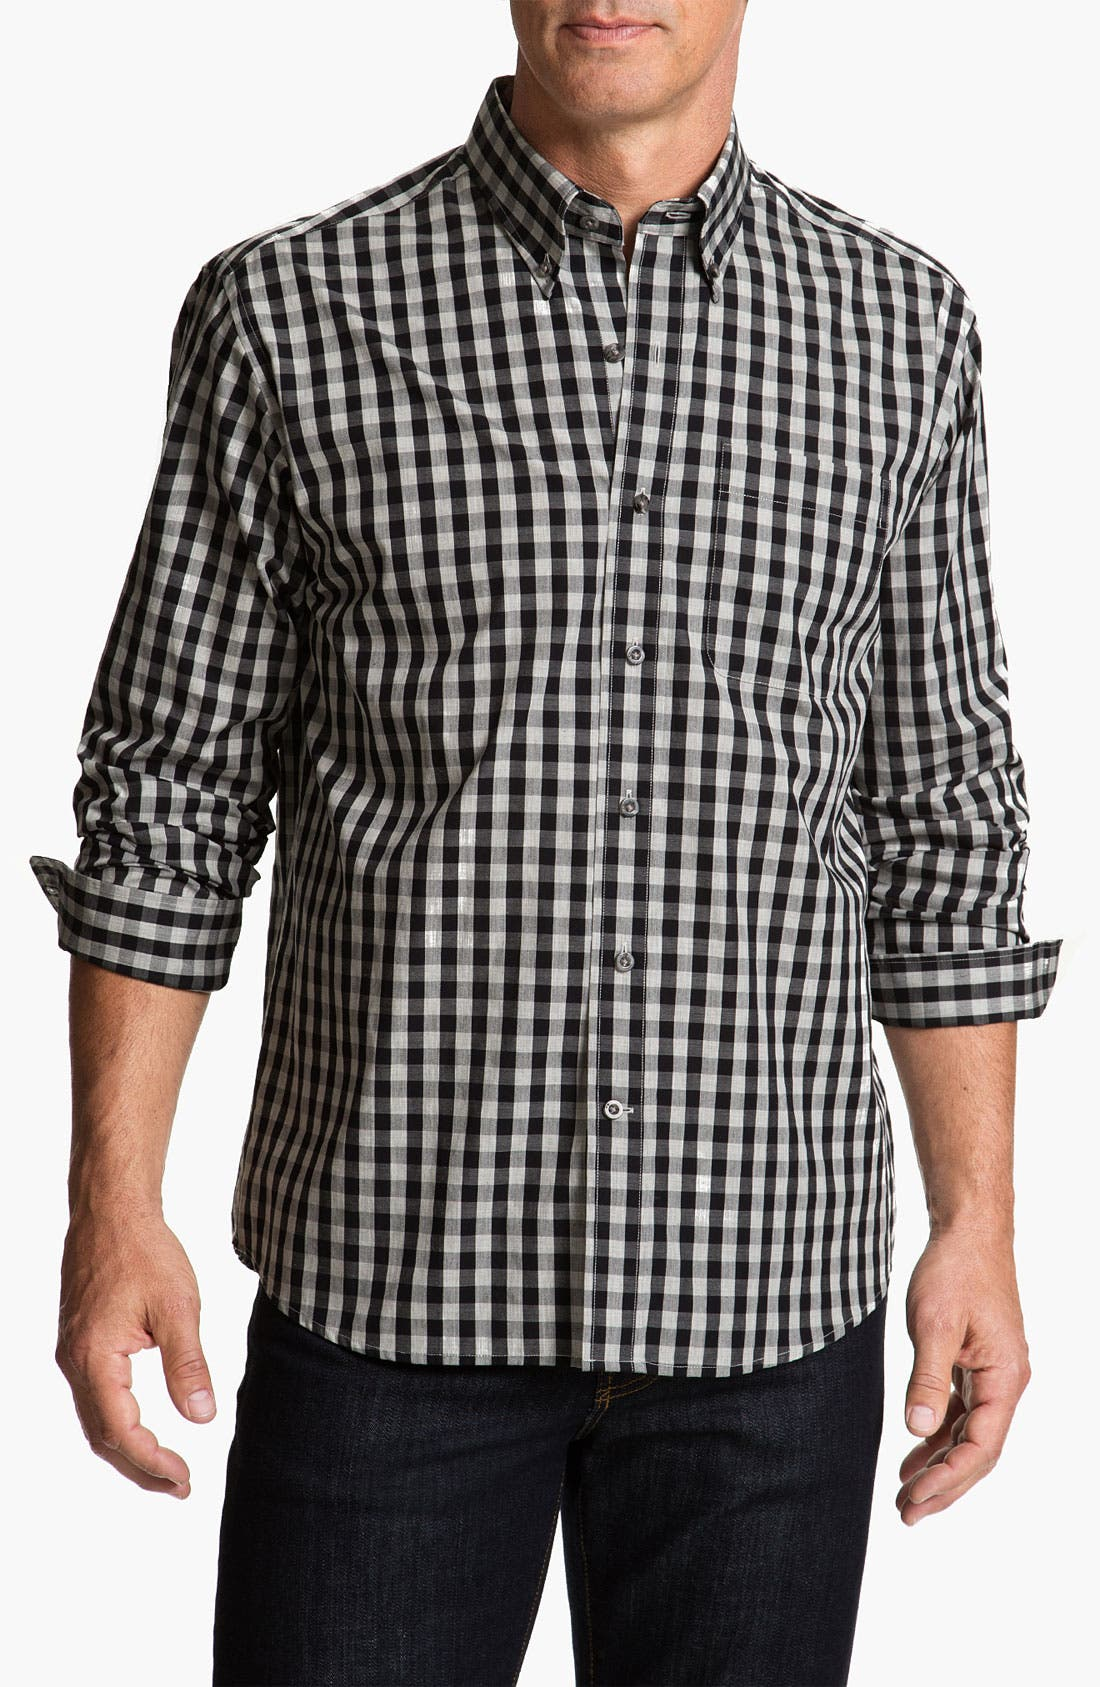 Alternate Image 1 Selected - Cutter & Buck 'Tusk' Check Sport Shirt (Big & Tall)